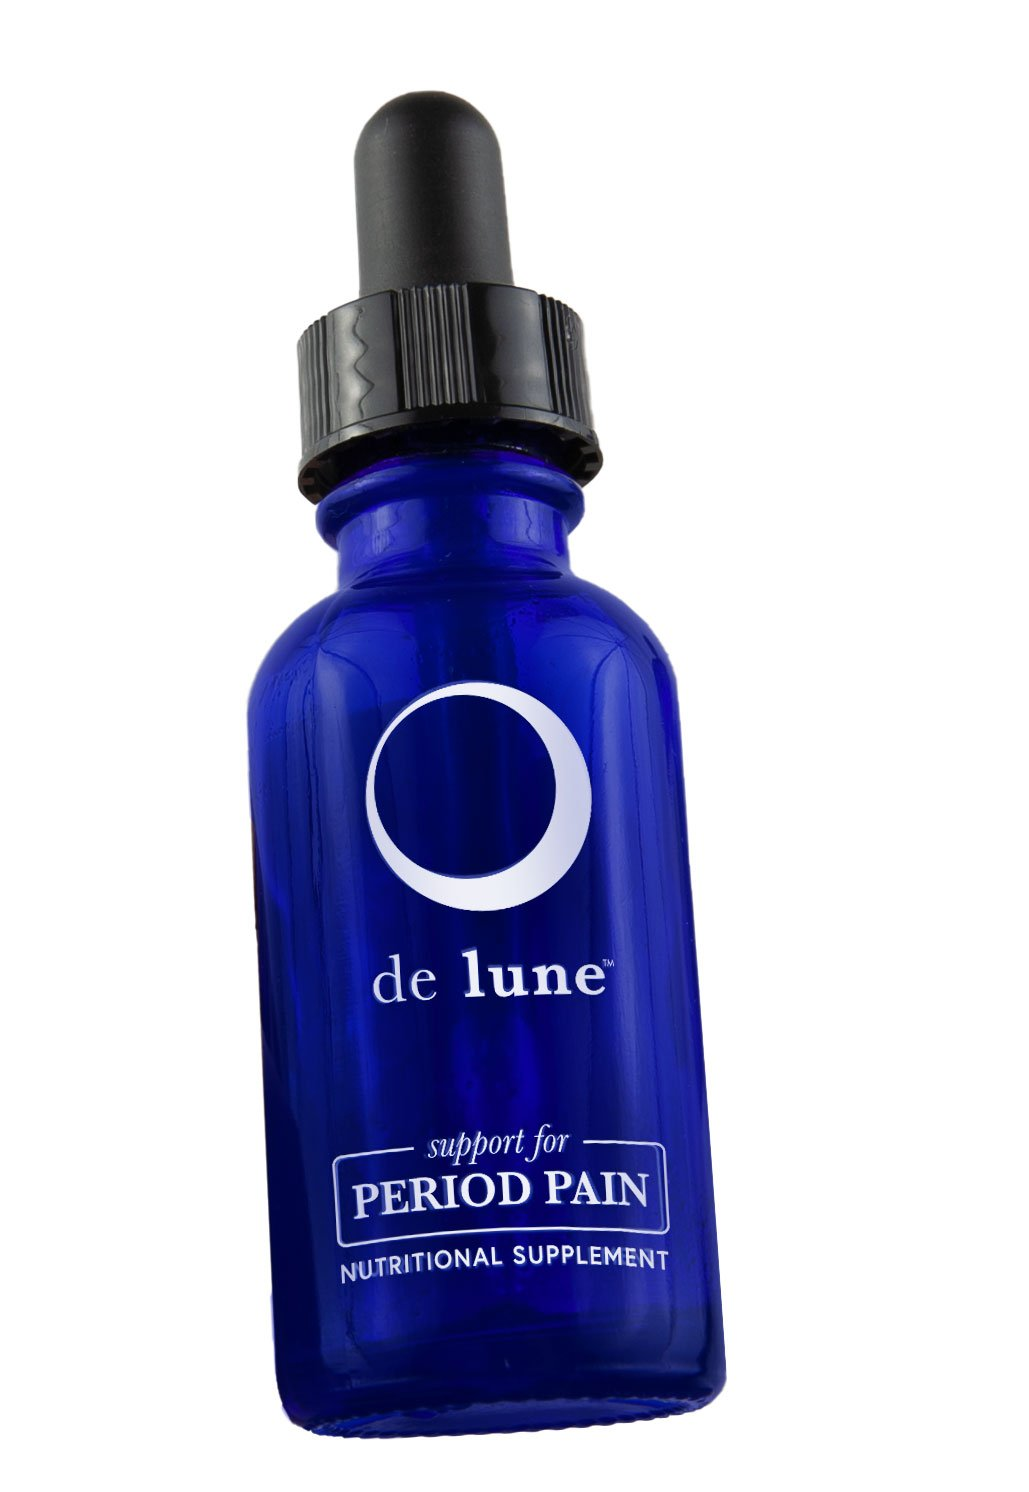 de lune support for period pain